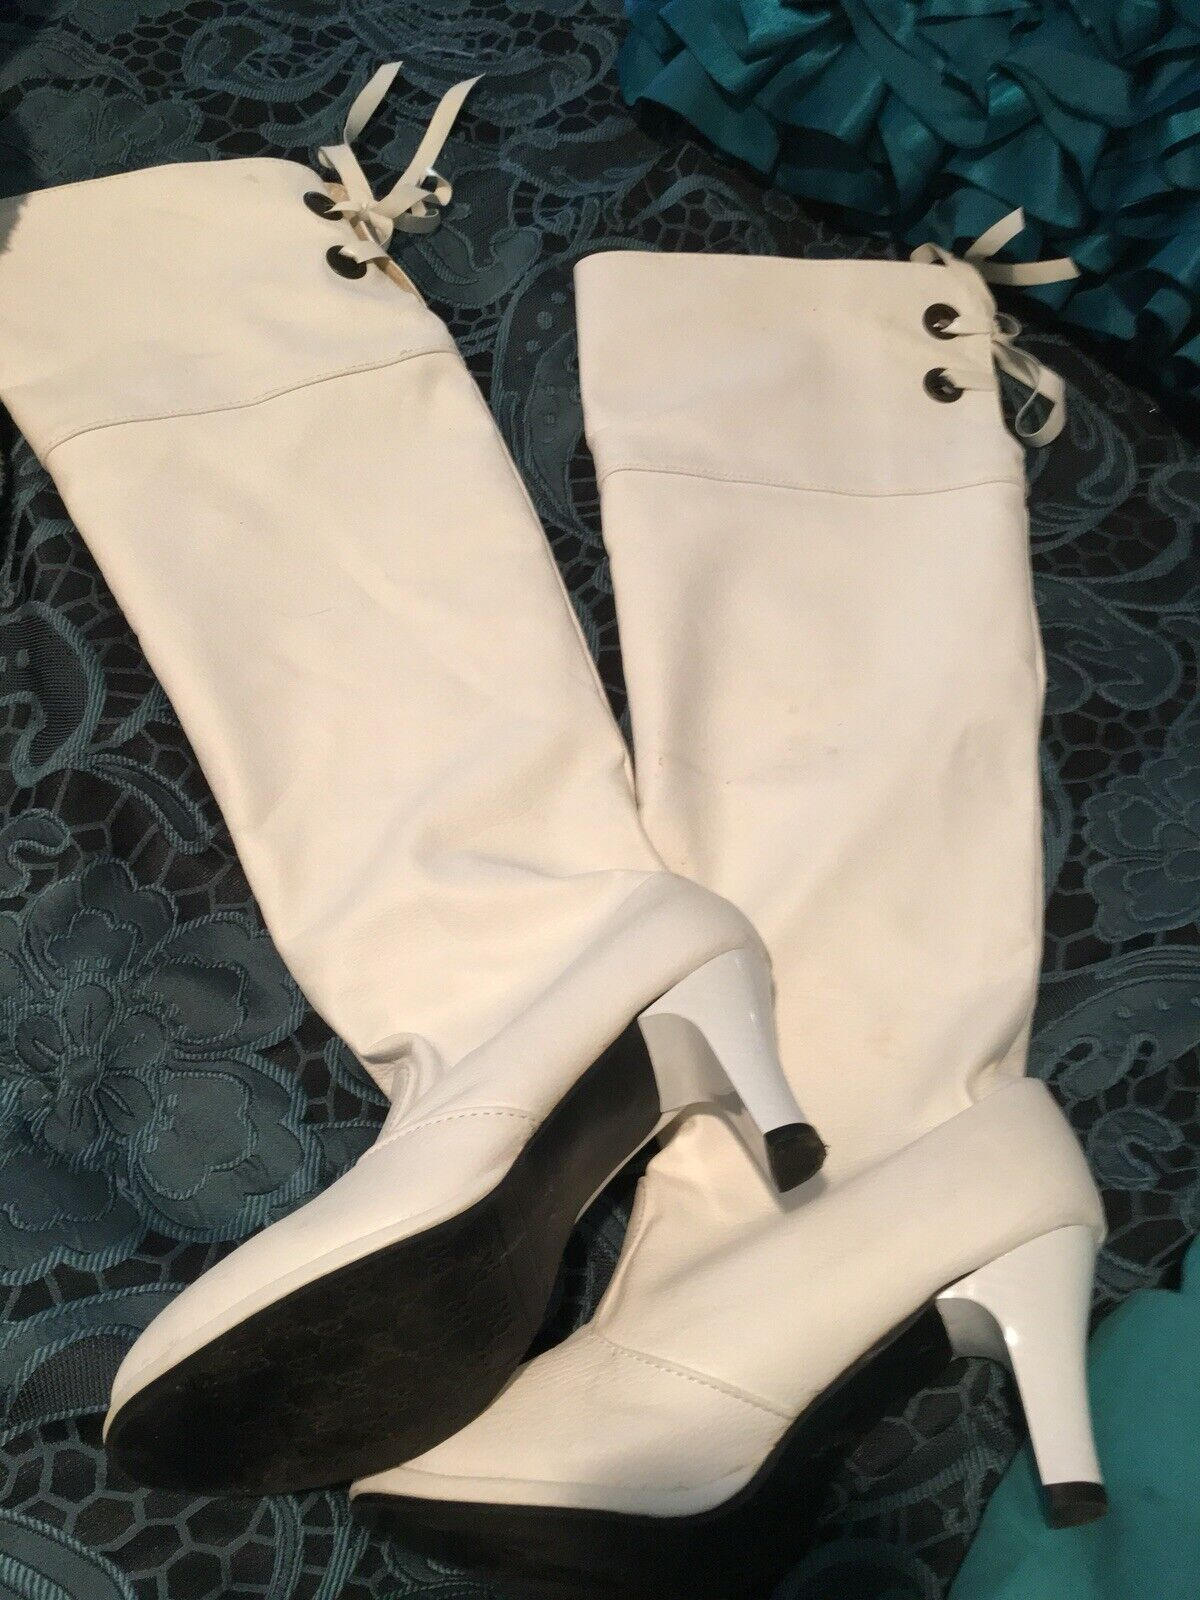 Ladie's White Knee High Boots